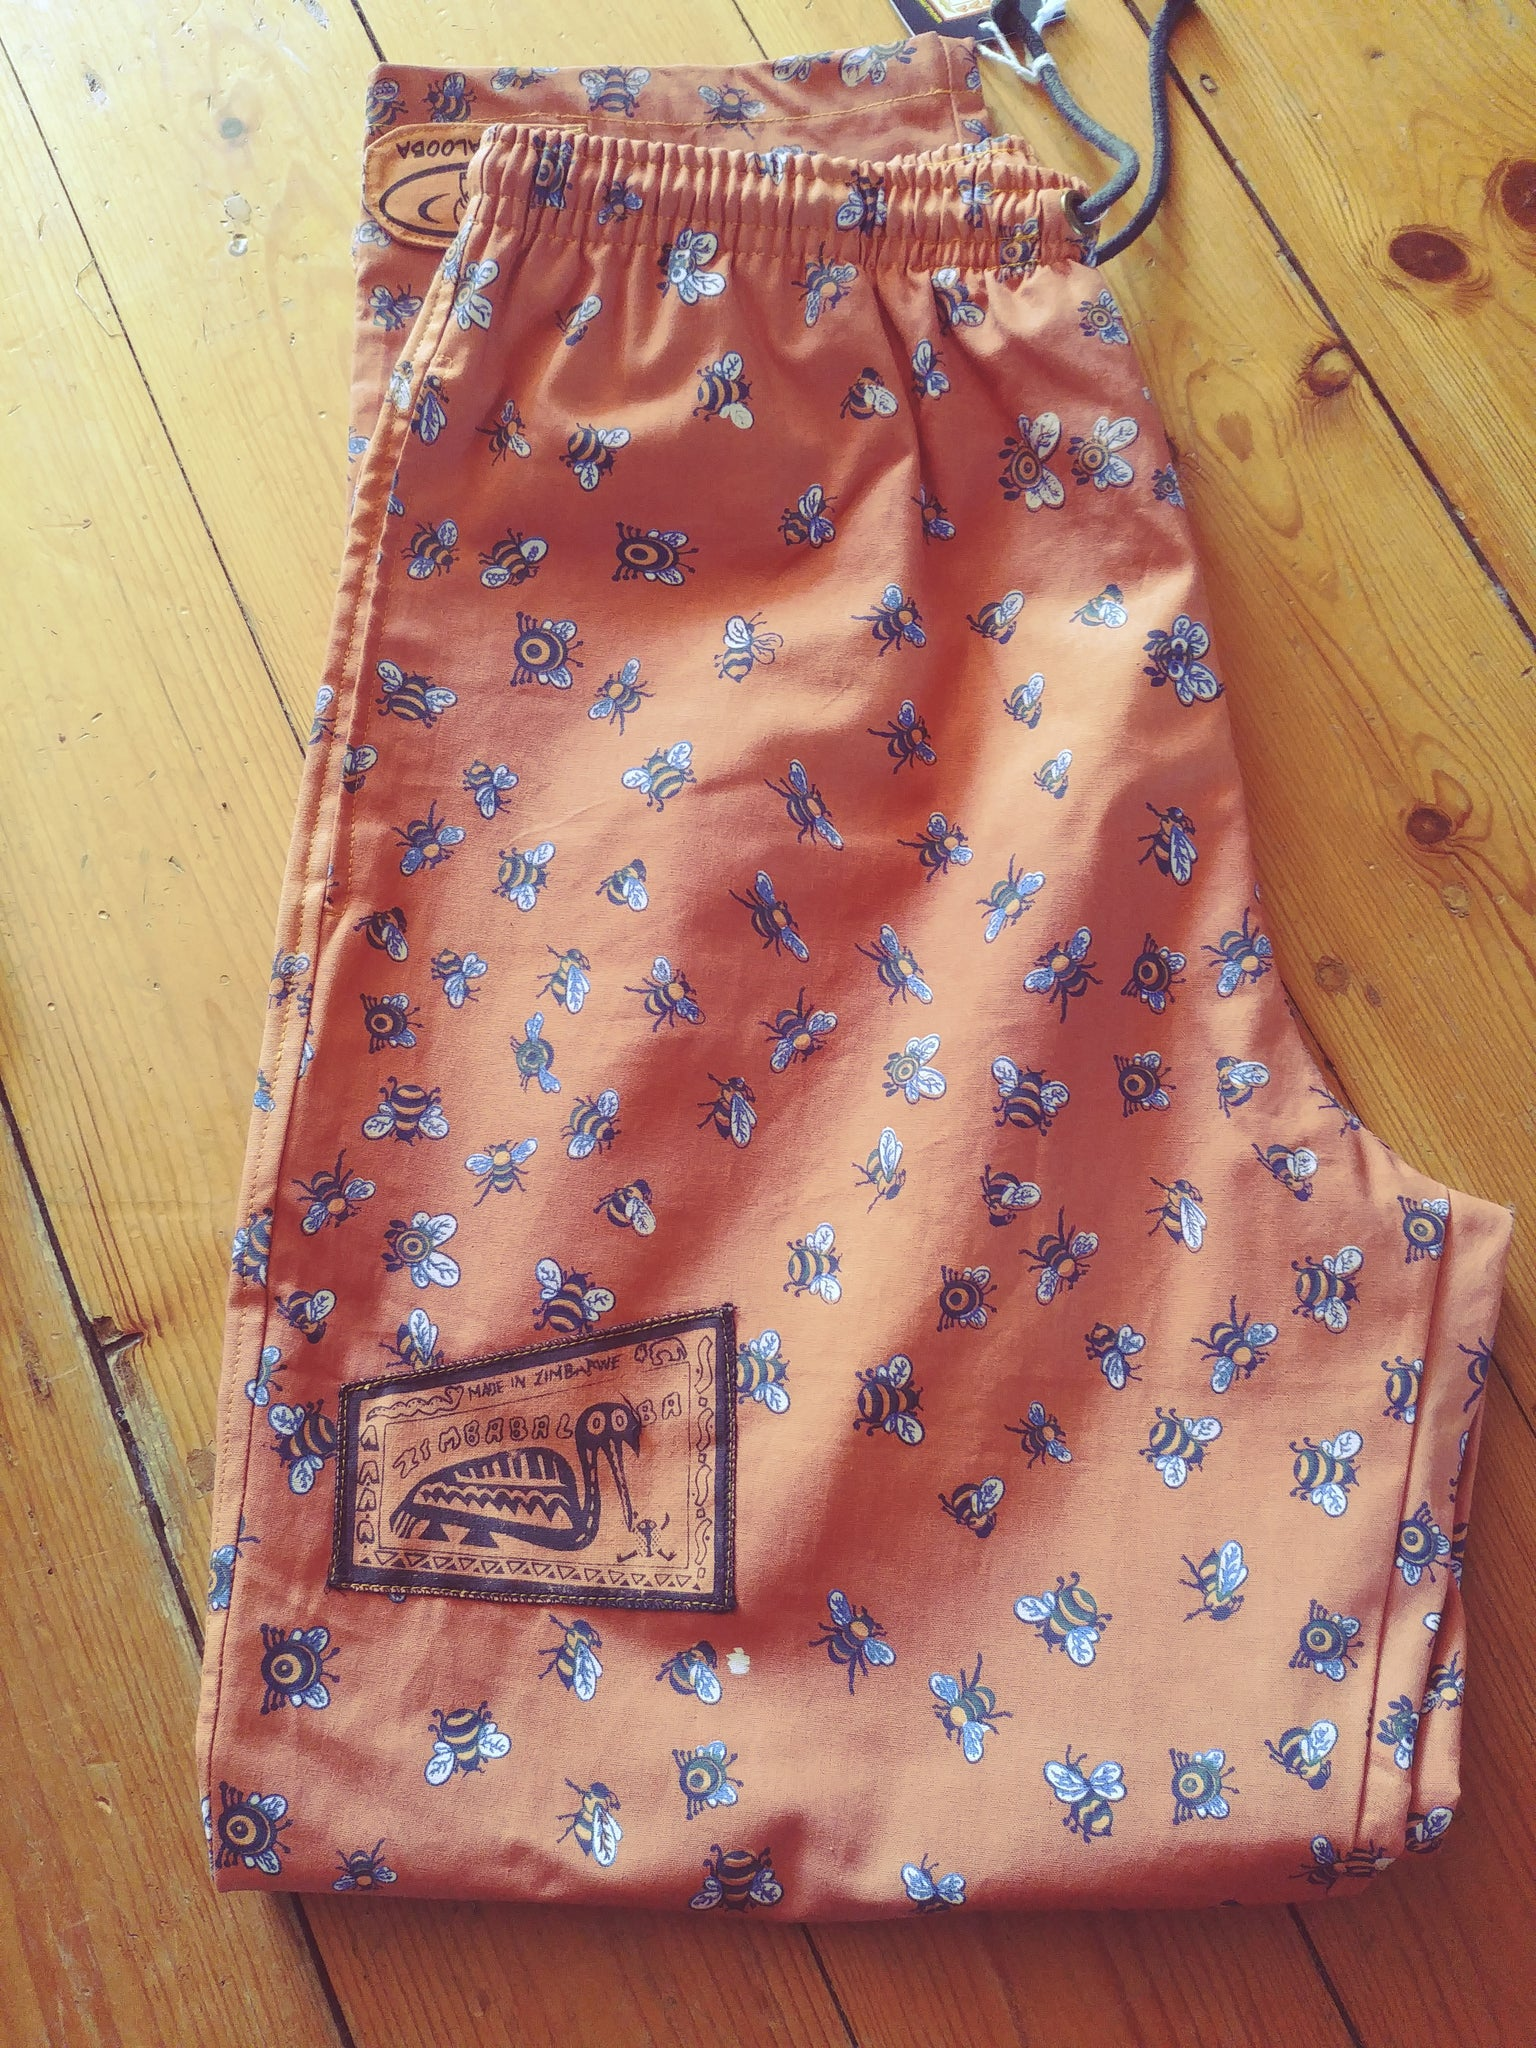 Verts - Busy Bee Print - 100% Cotton Trousers